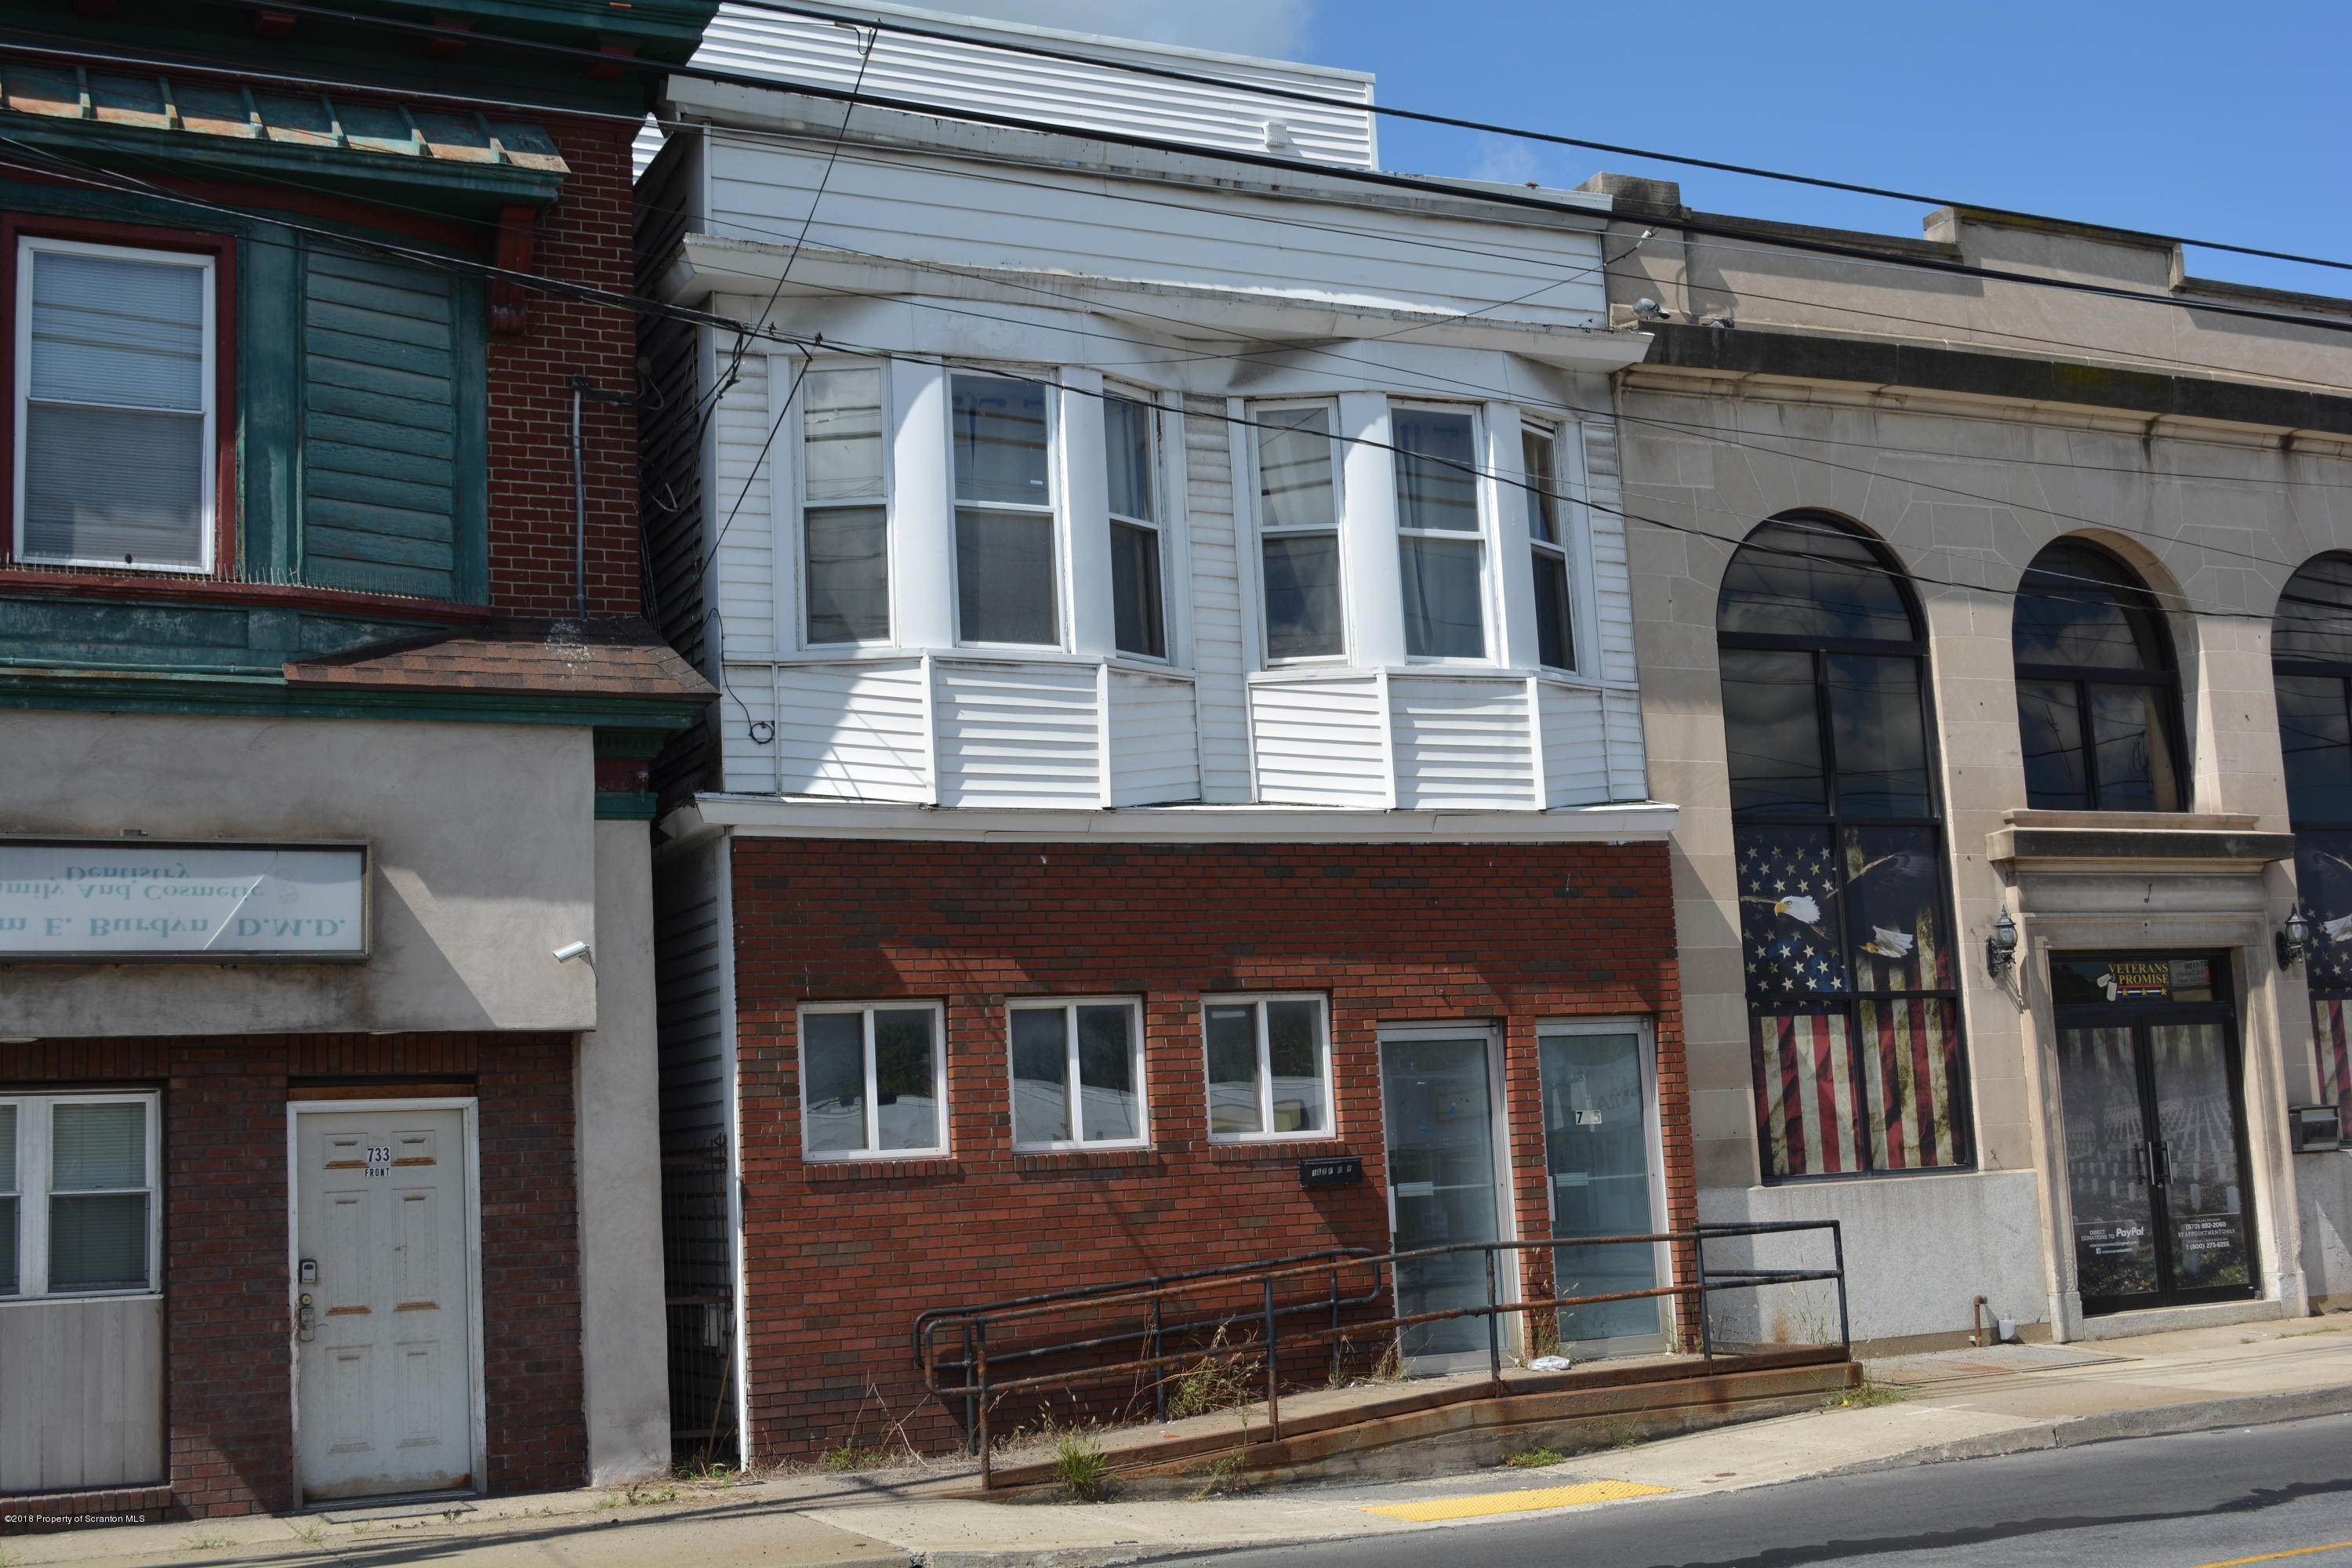 Commercial for Sale at 735 Main St Dickson City, Pennsylvania 18519 United States